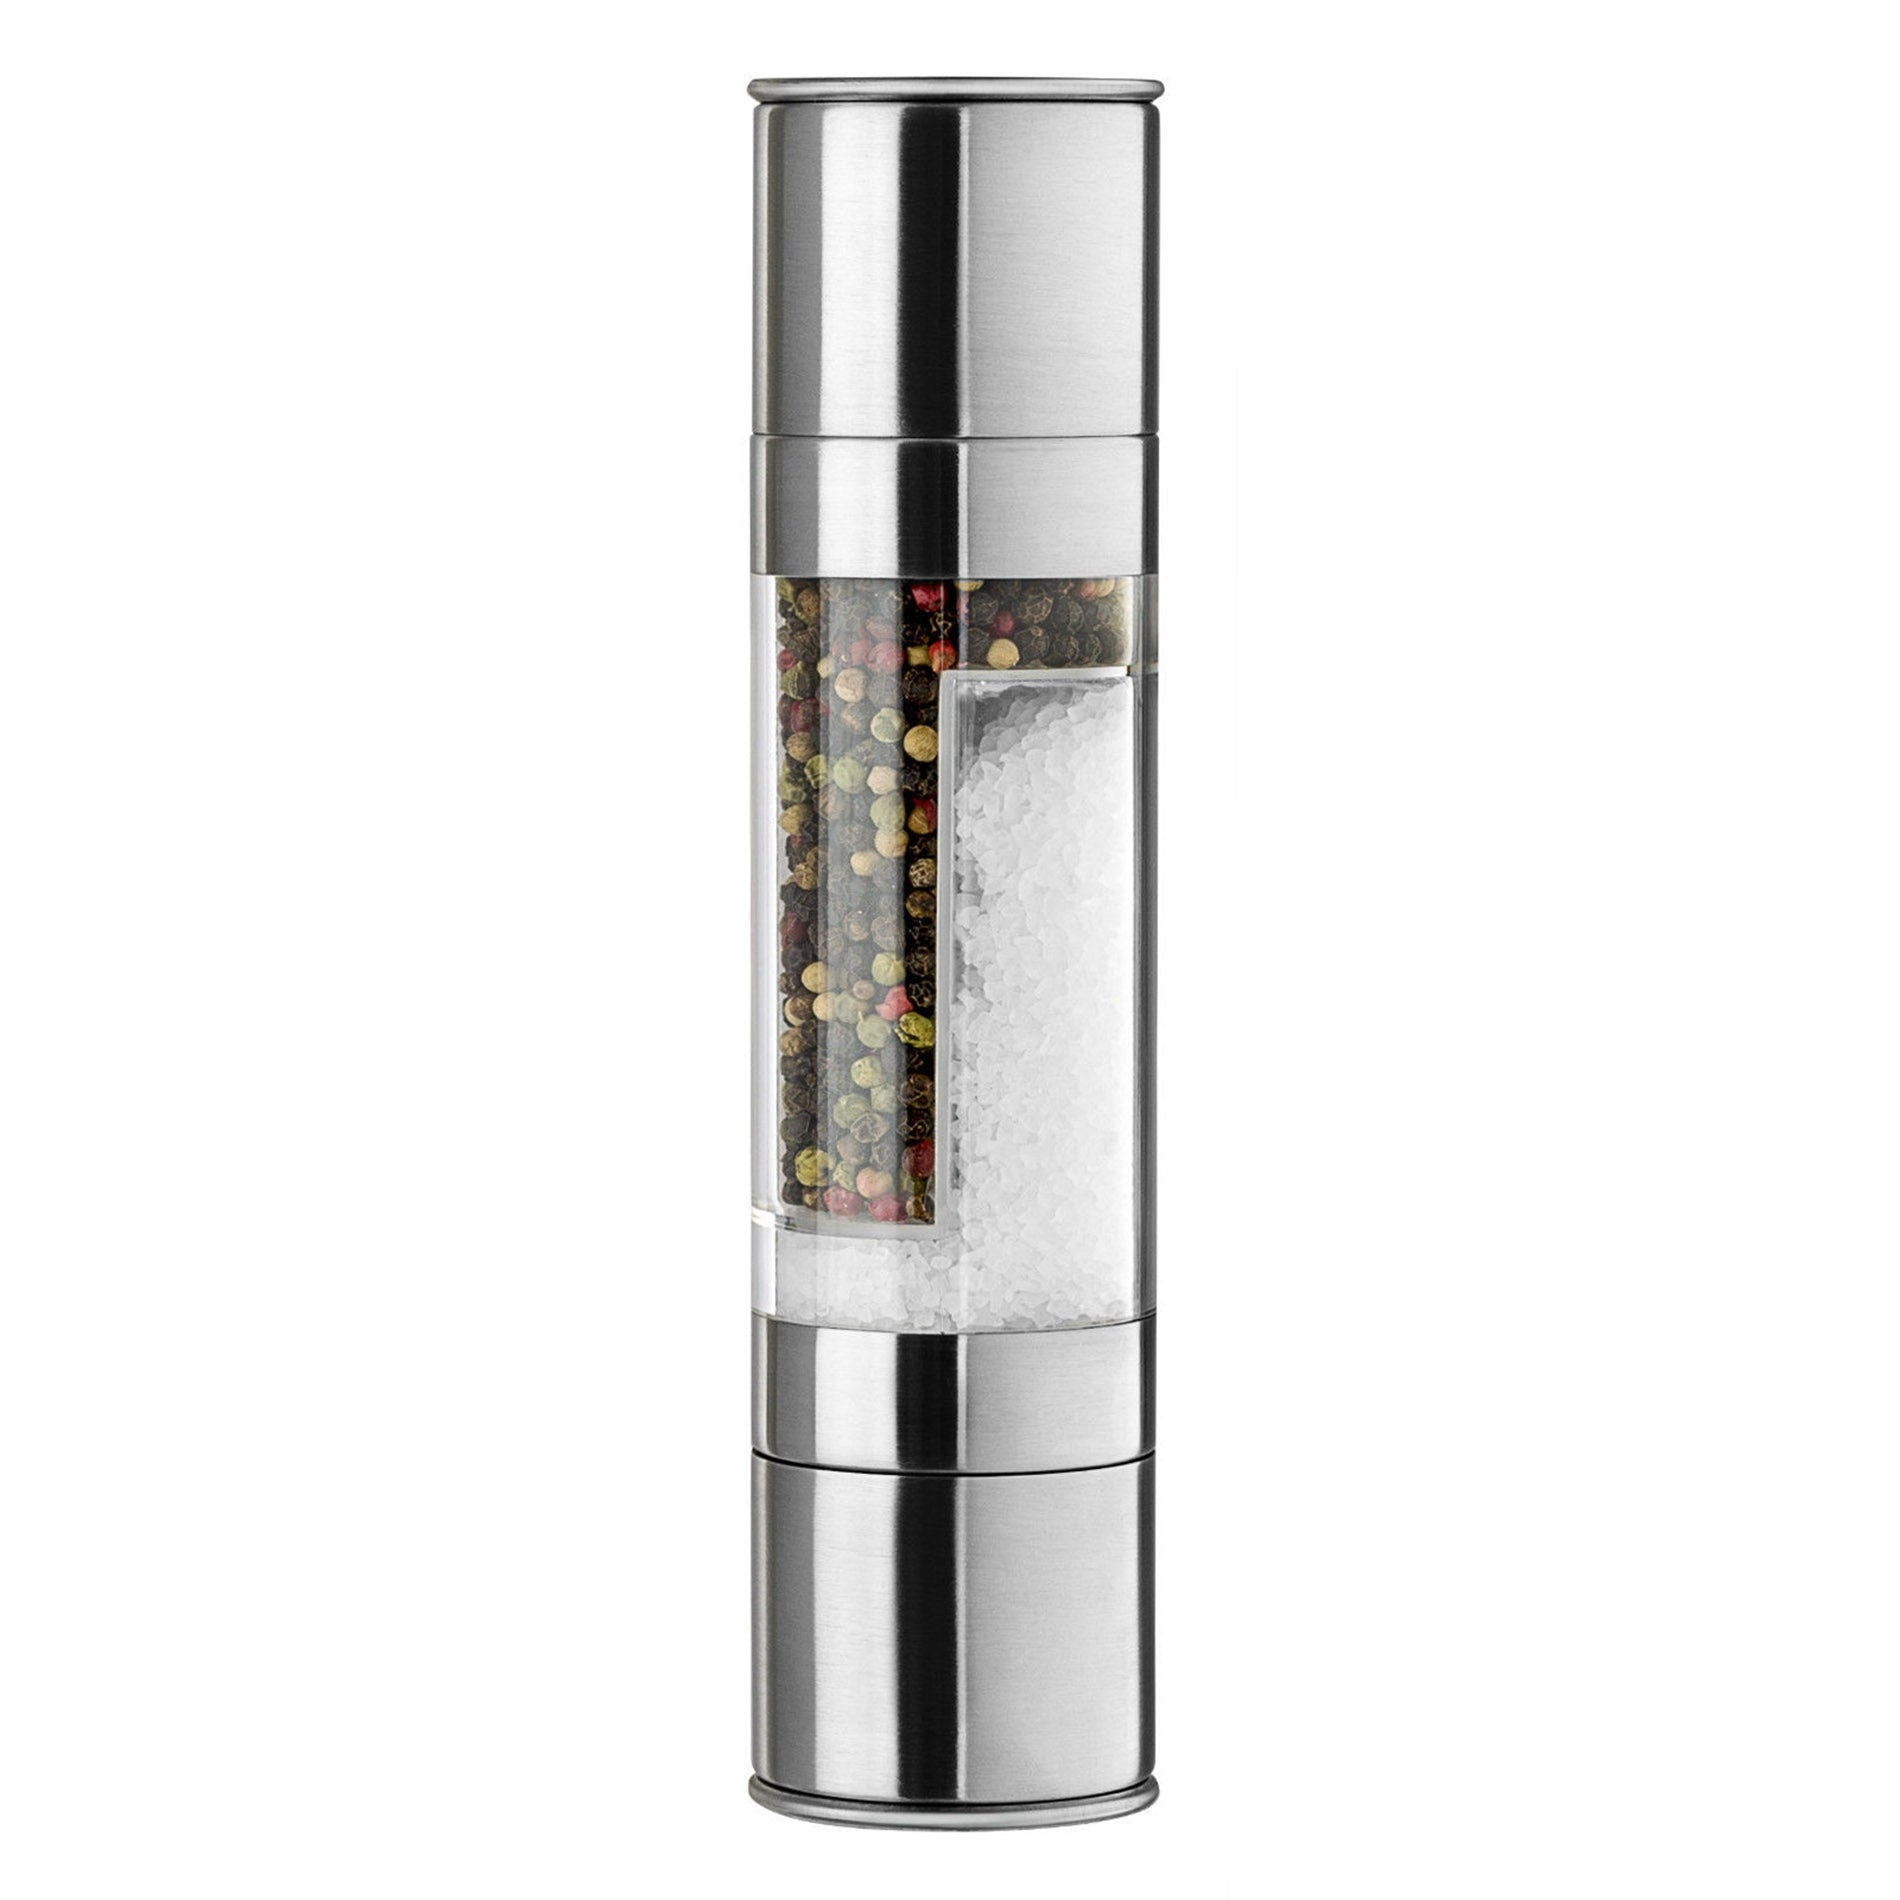 2-in-1 Dual Stainless Steel Salt & Pepper Mill